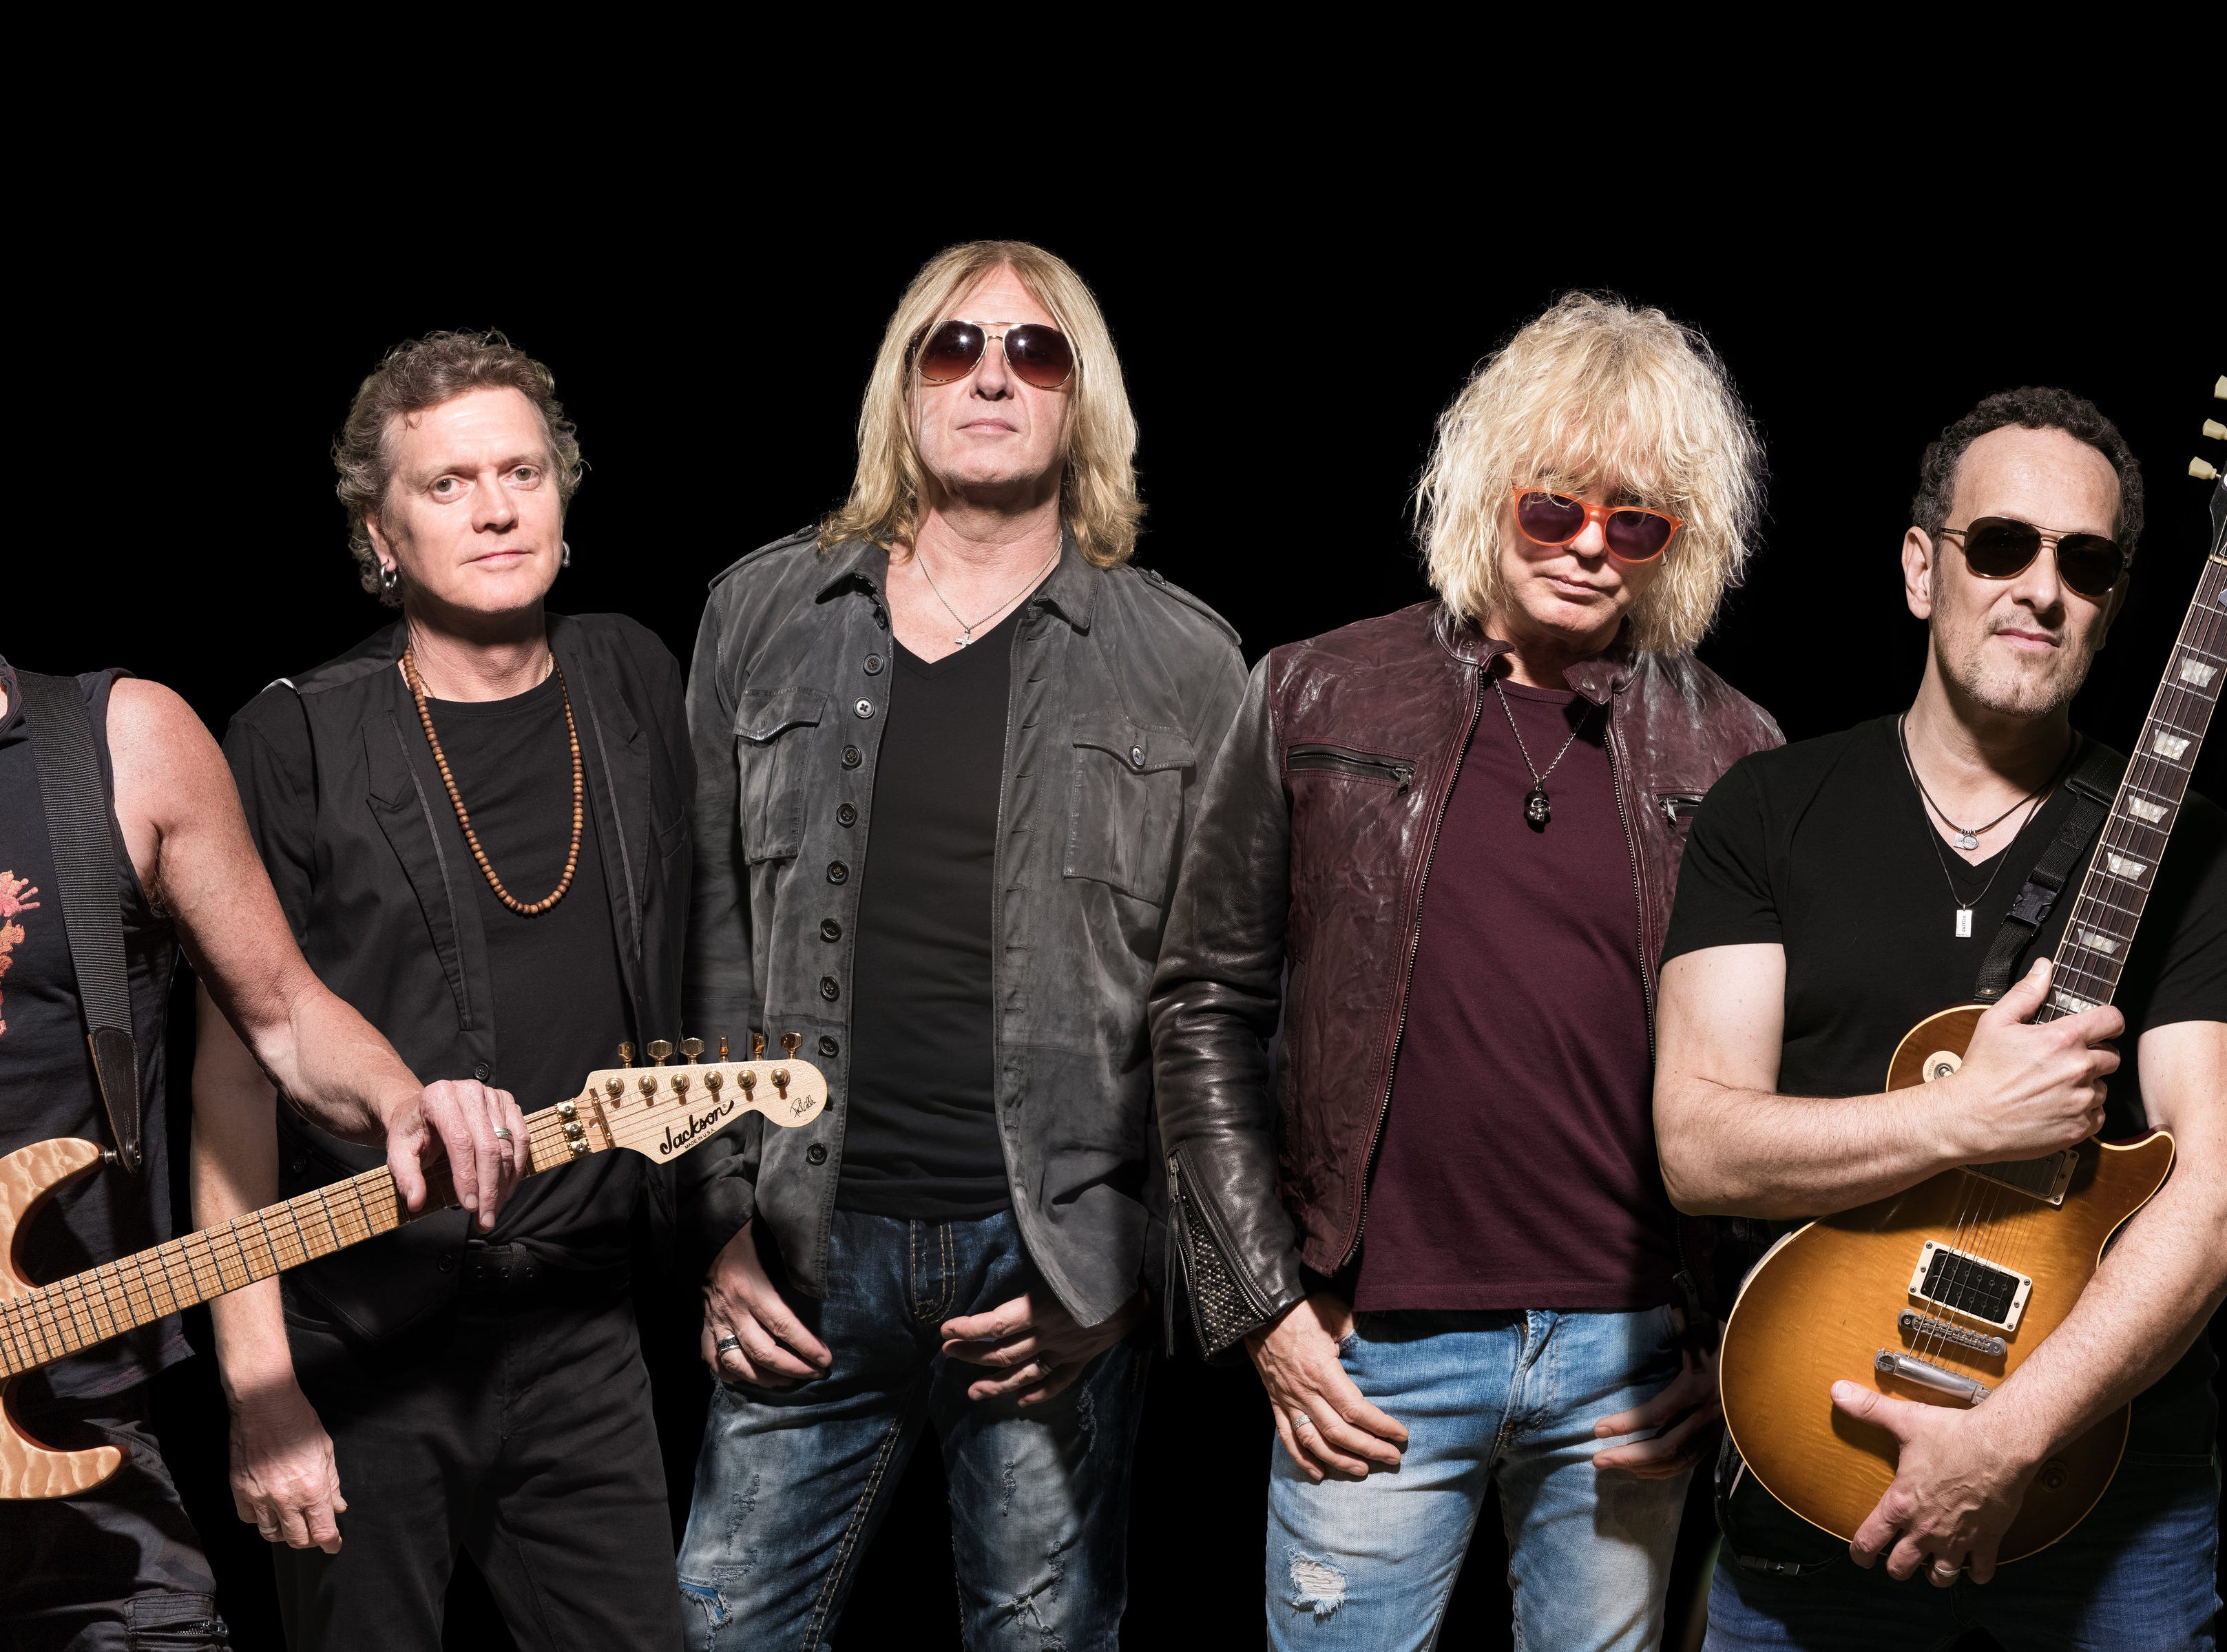 There are 15 nominees for induction into the Rock & Roll Hall of Fame in 2019, including Def Leppard, pictured here. To be eligible for nomination, an individual artist or band must have released its first commercial recording at least 25 years prior to the year of nomination. Six out of 15 of the nominees are on the ballot for the first time. Def Leppard band membmers include, from left, Phil Collen, Rick Allen, Joe Elliott, Rick Savage and Vivian Campbell.